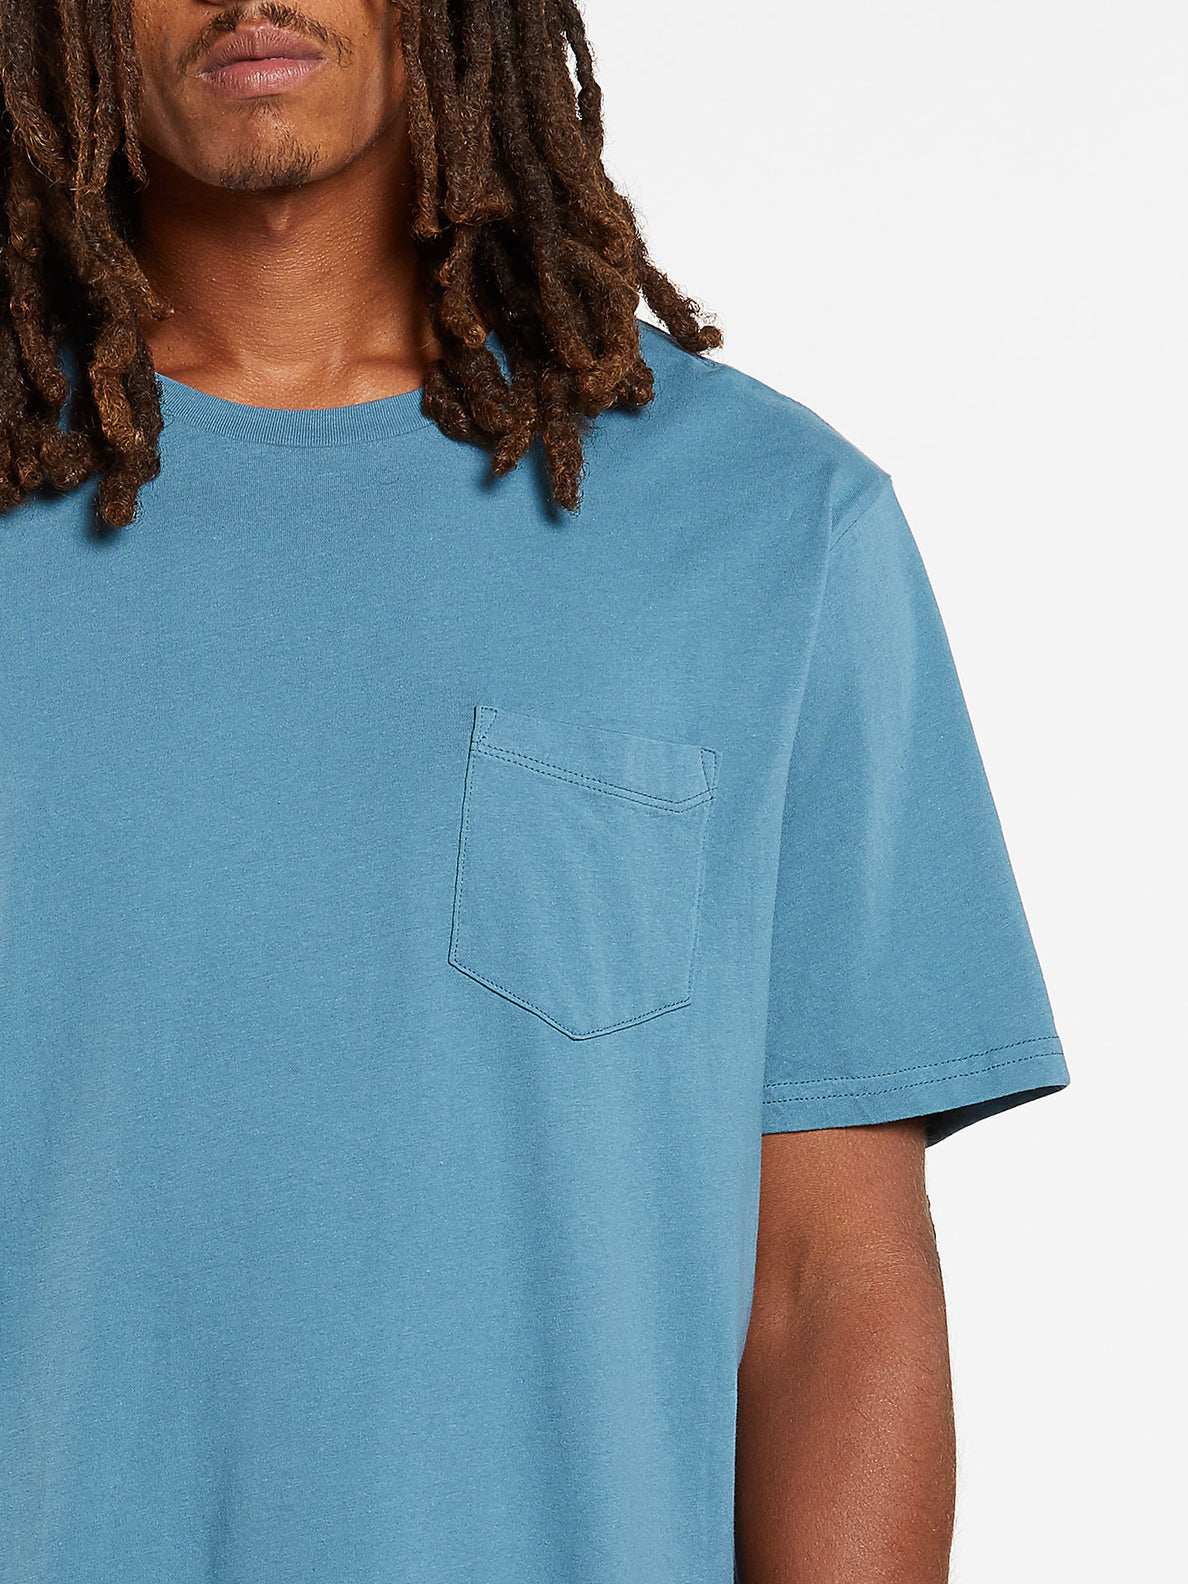 Solid Short Sleeve Pocket Tee - Horizon Blue (A5031808_HZN) [1]